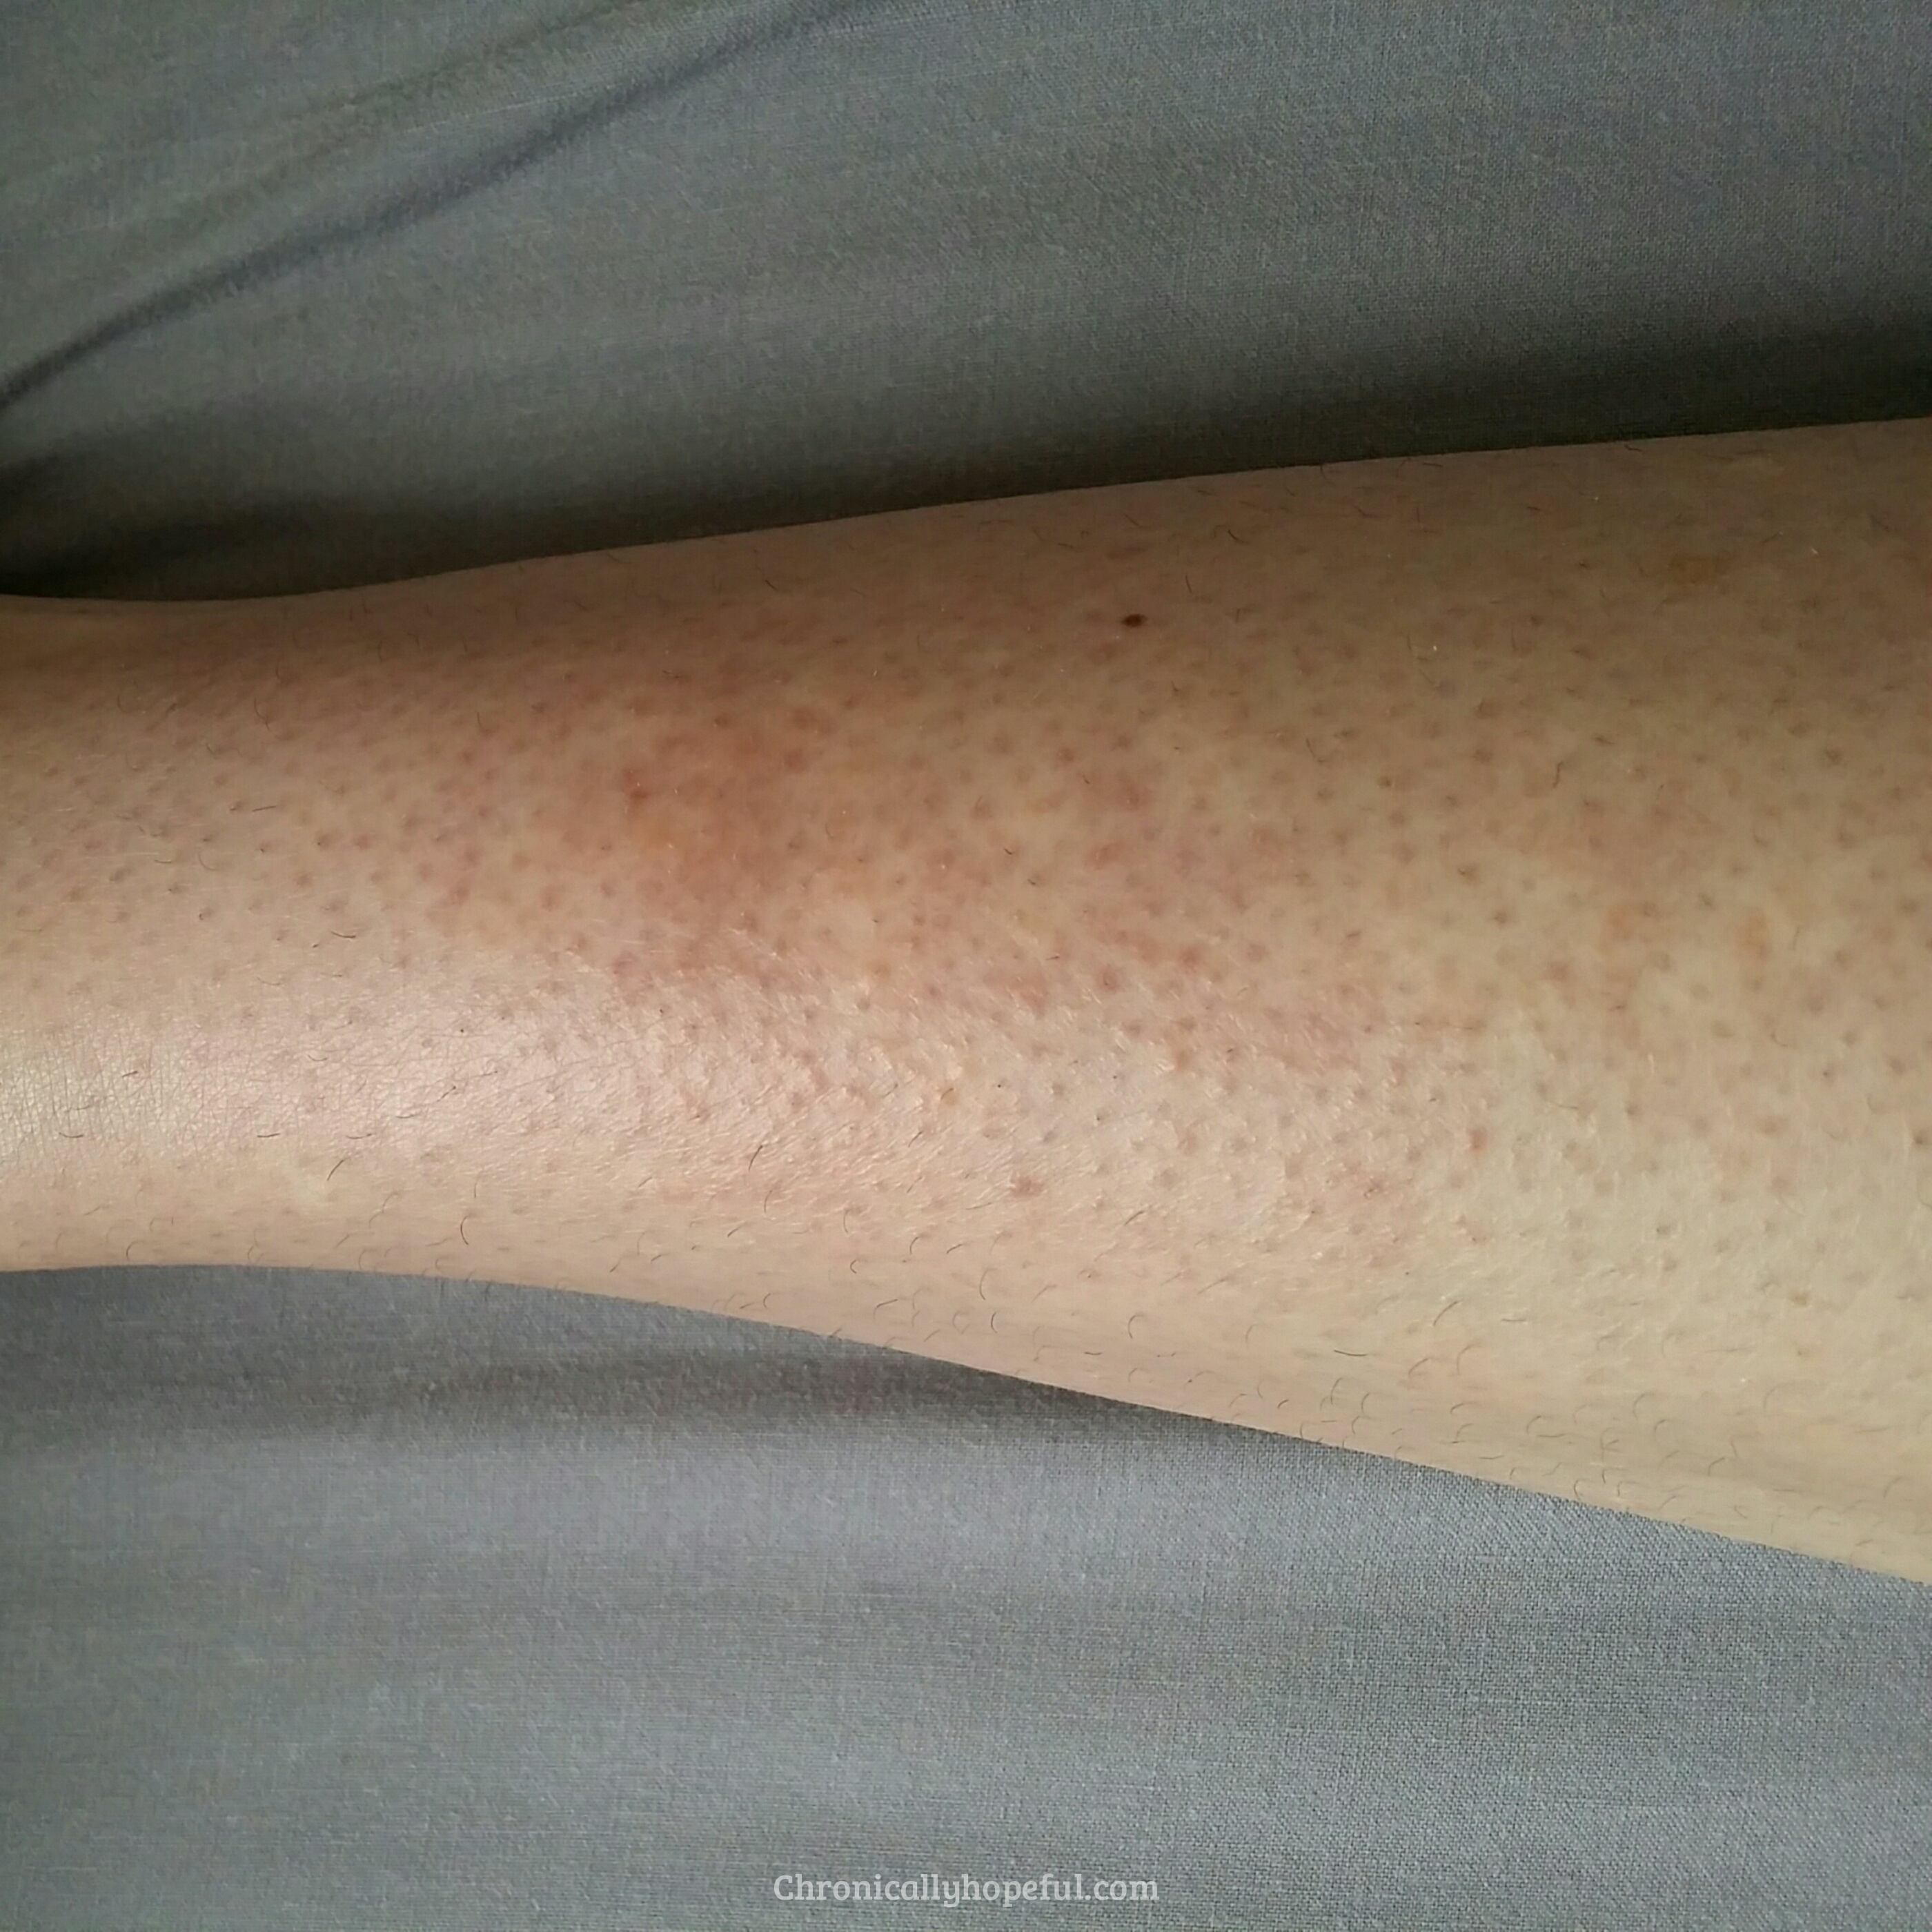 Initial rash, Histamine Intolerance, Chronically Hopeful